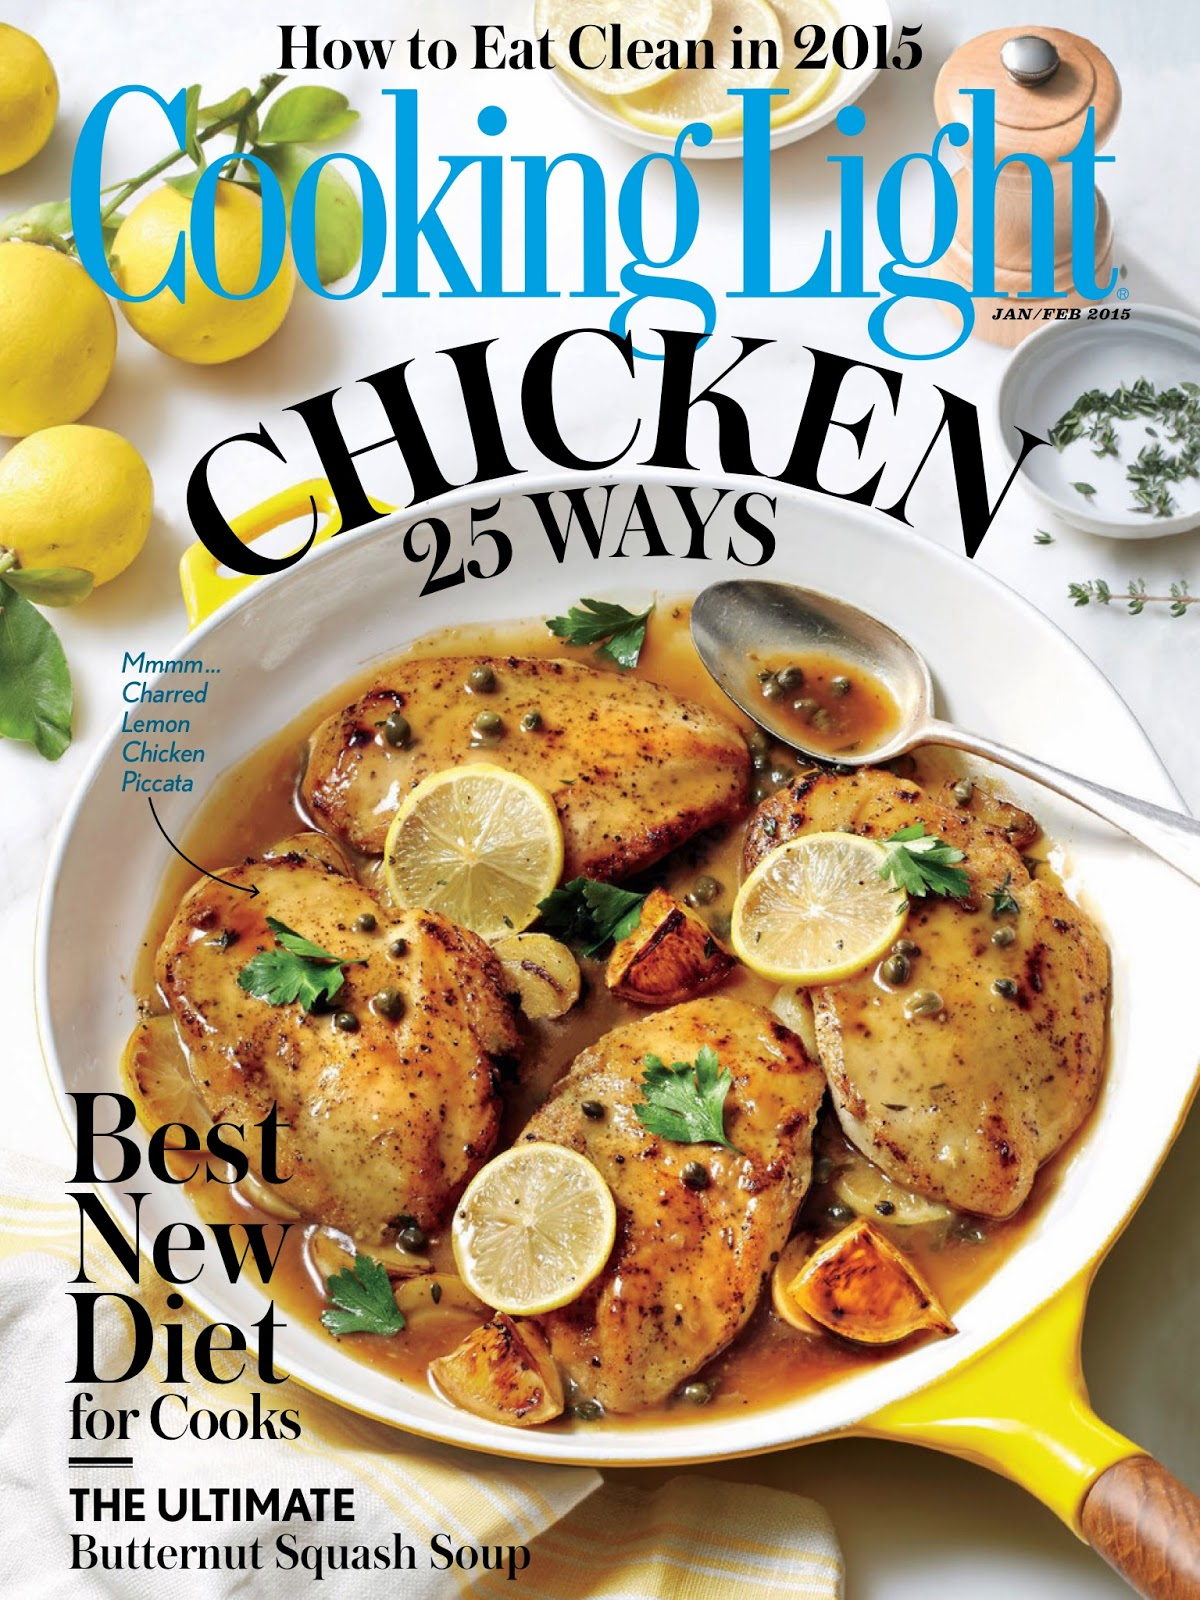 Cooking Light January 2015